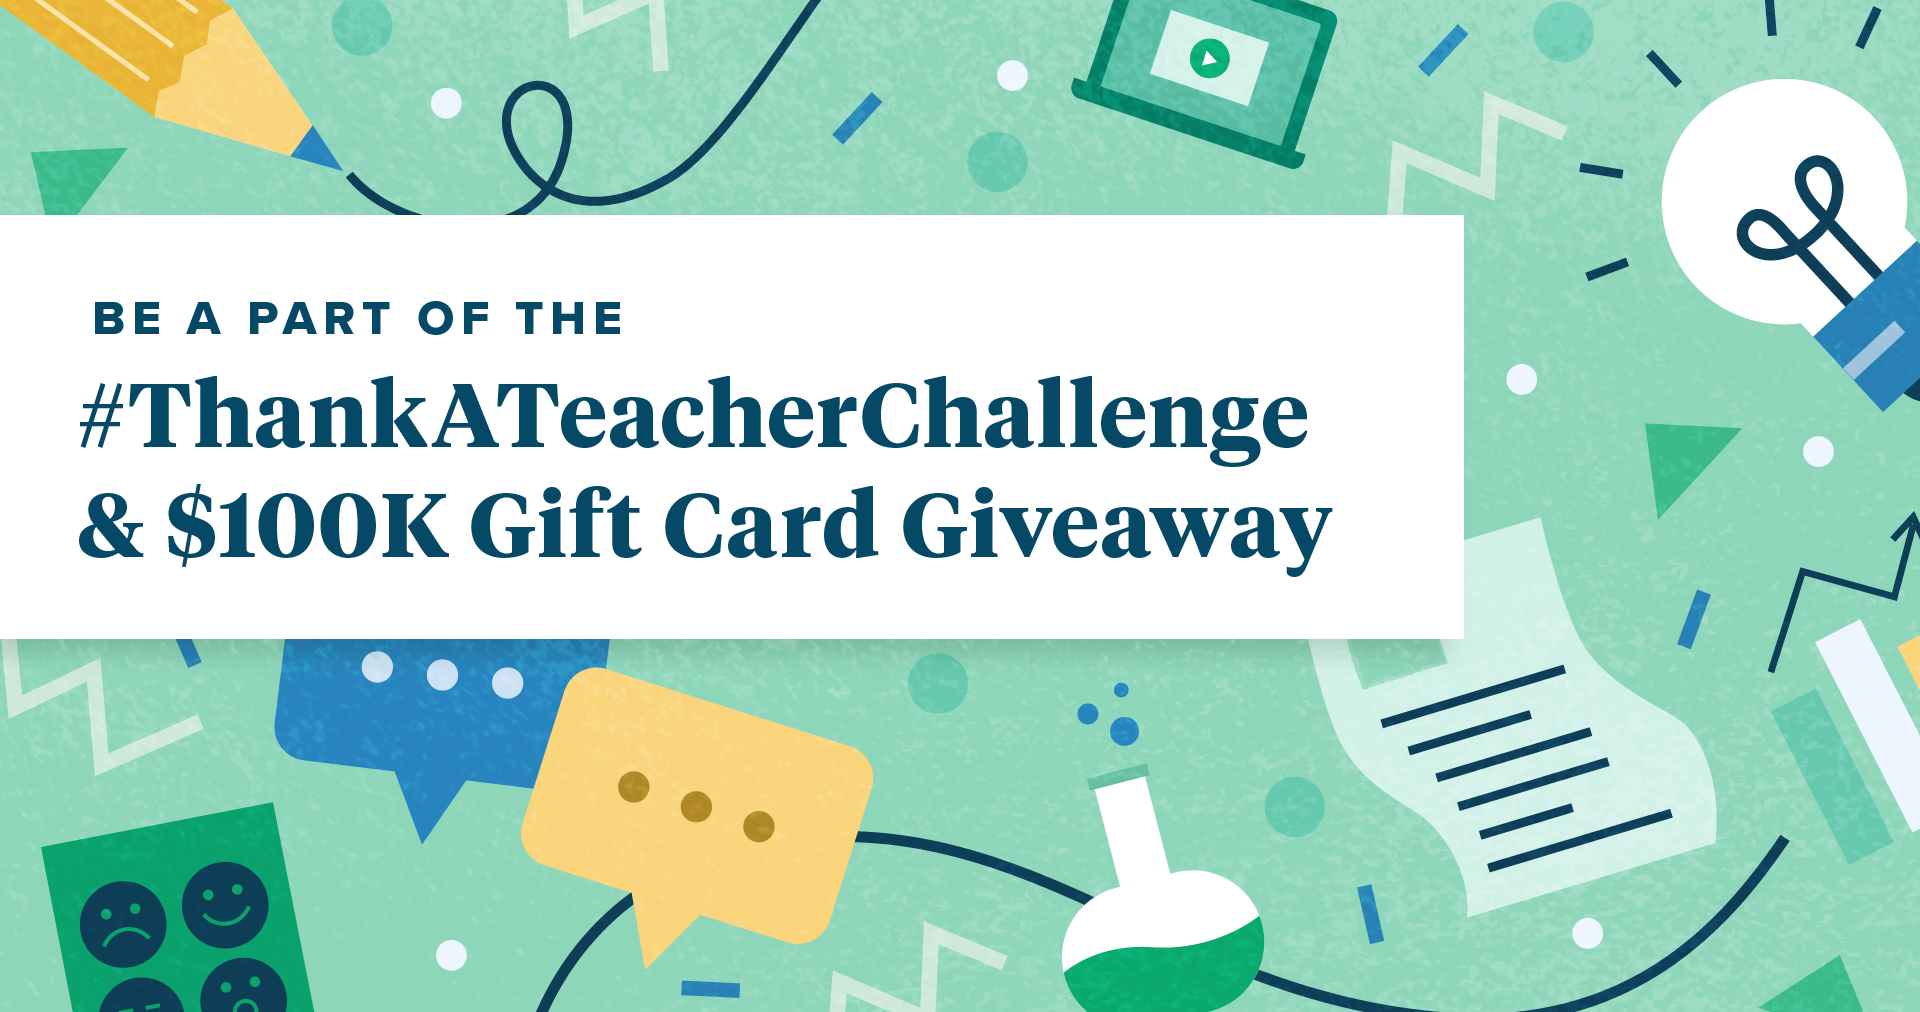 Be a part of the #ThankATeacher Challege and $100,000 gift card giveaway